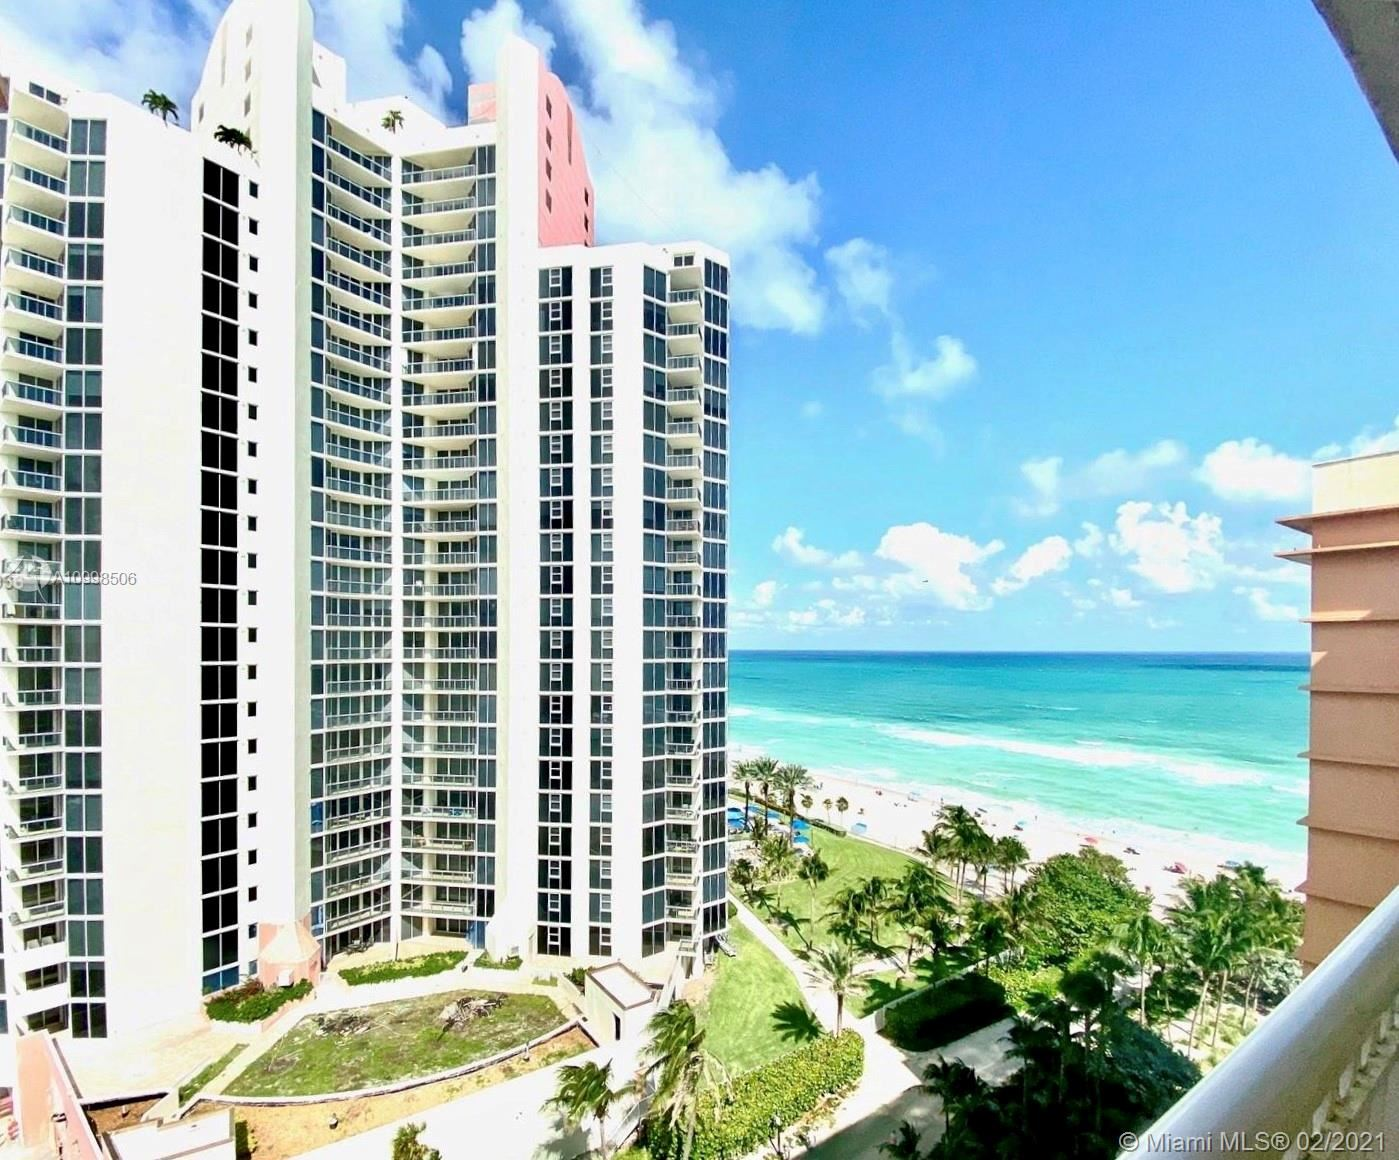 19201 Collins Ave #1025, Sunny Isles, FL 33160 - #: A10998506